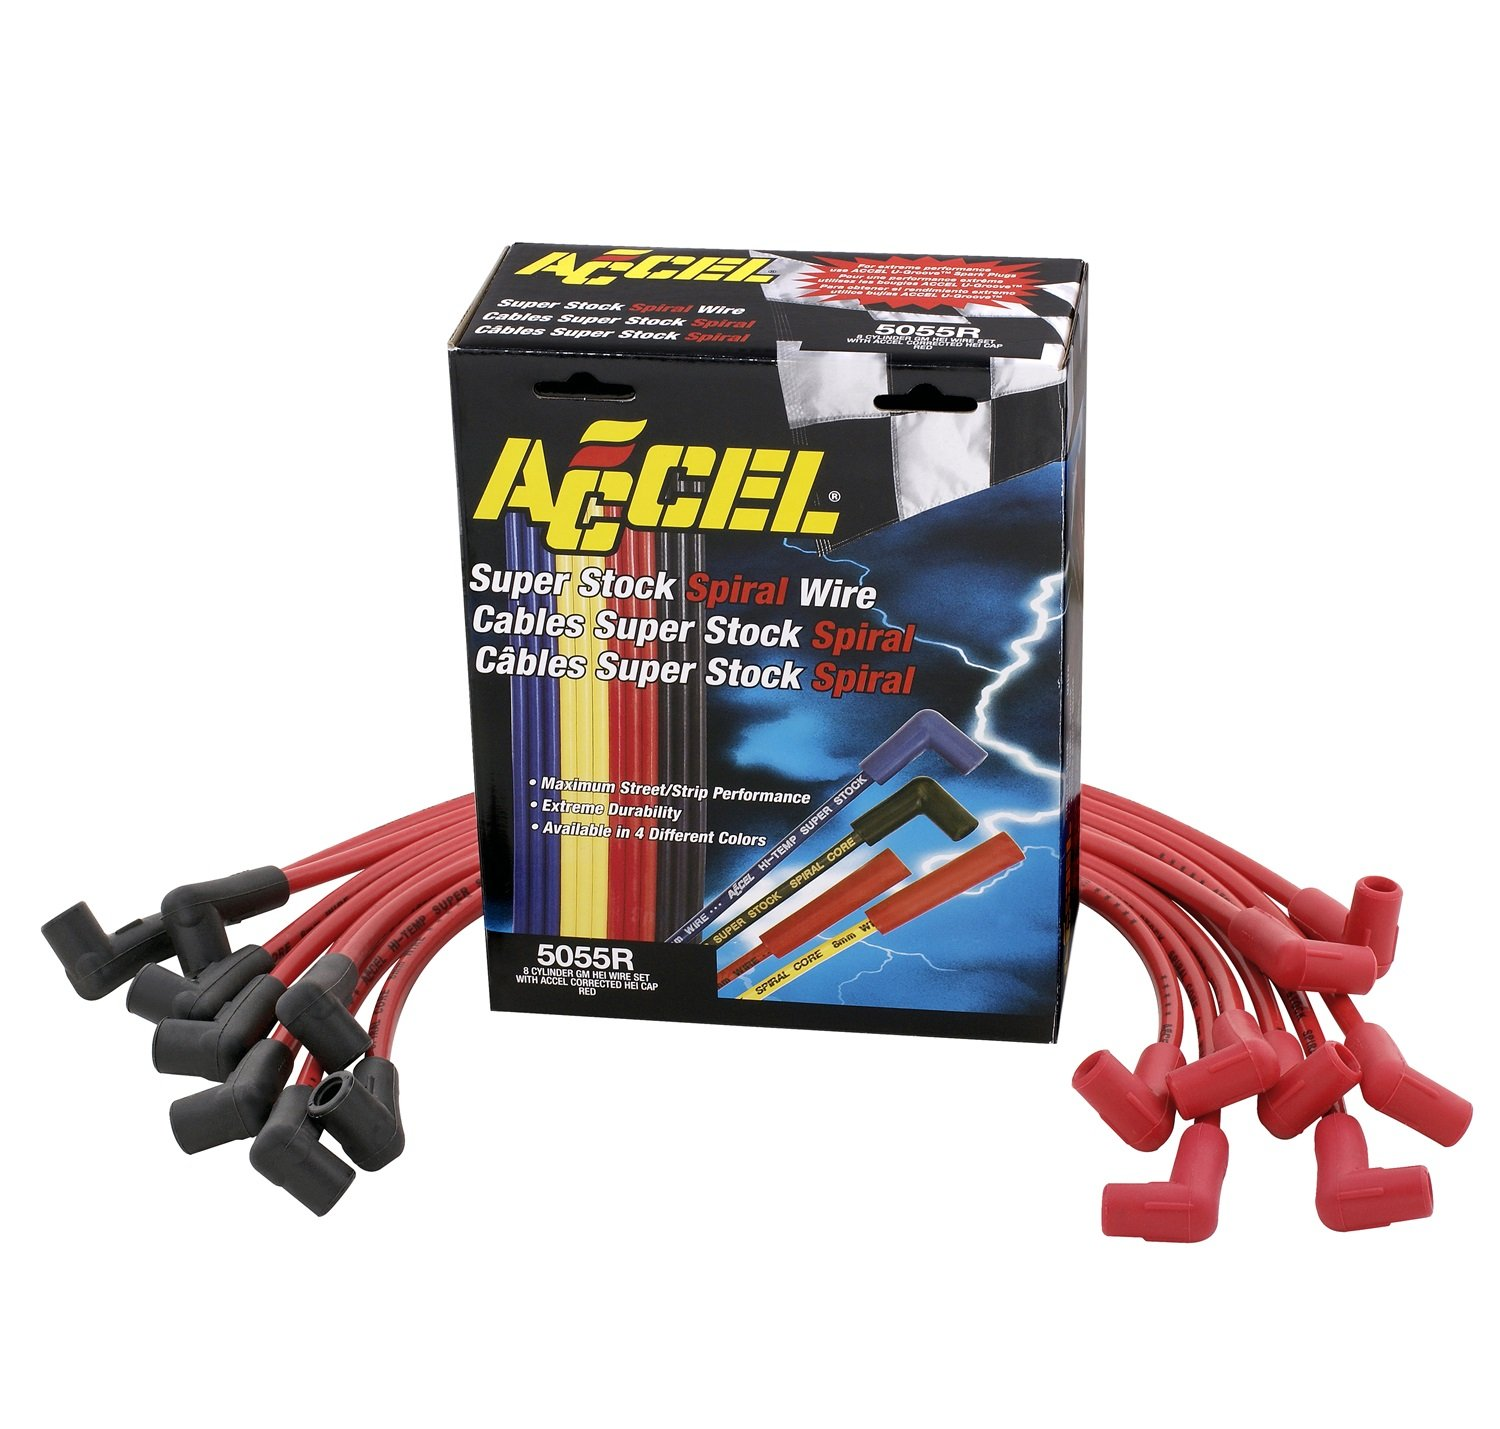 Accel Acc5055r Red 8mm Super Stock Spiral Custom Wire Gm Hei Wiring Set Automotive